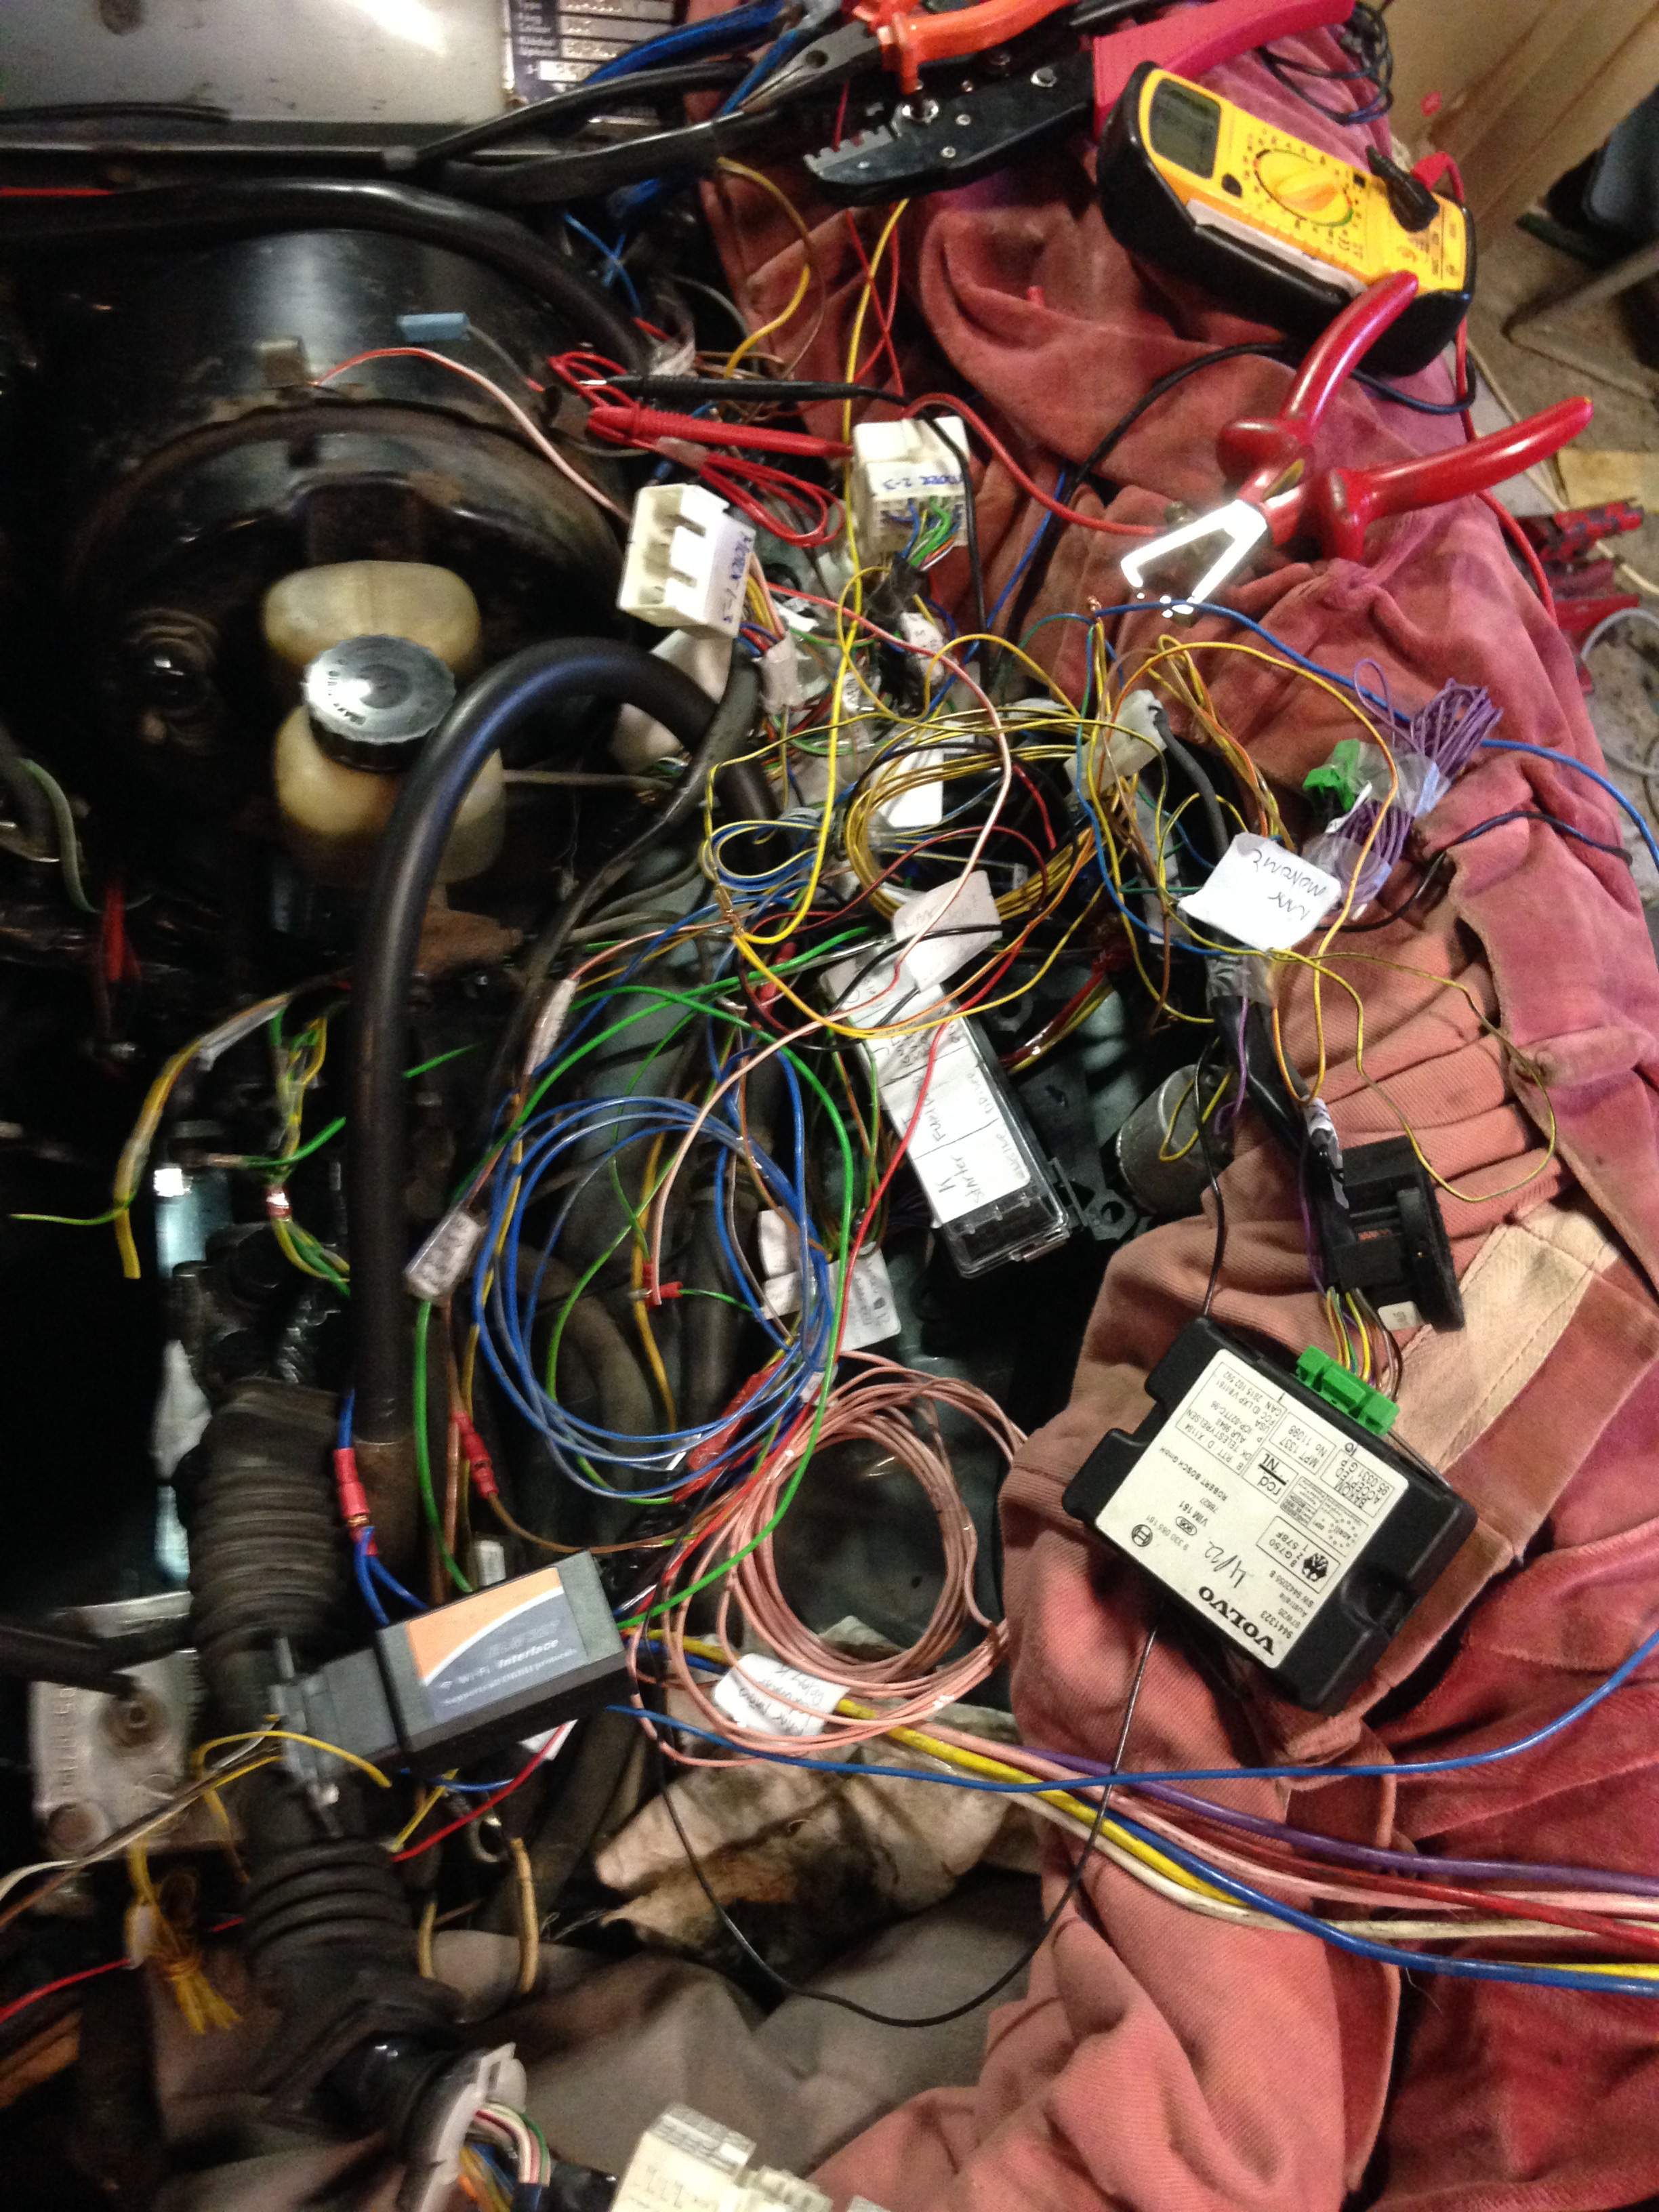 Volvo 164 Engine Swap B30 To B6304 Wiring Diagram Pic Here Is First Test Connections Will Be Routed Nicely Off Course But I Wanted Sure The Basics Work